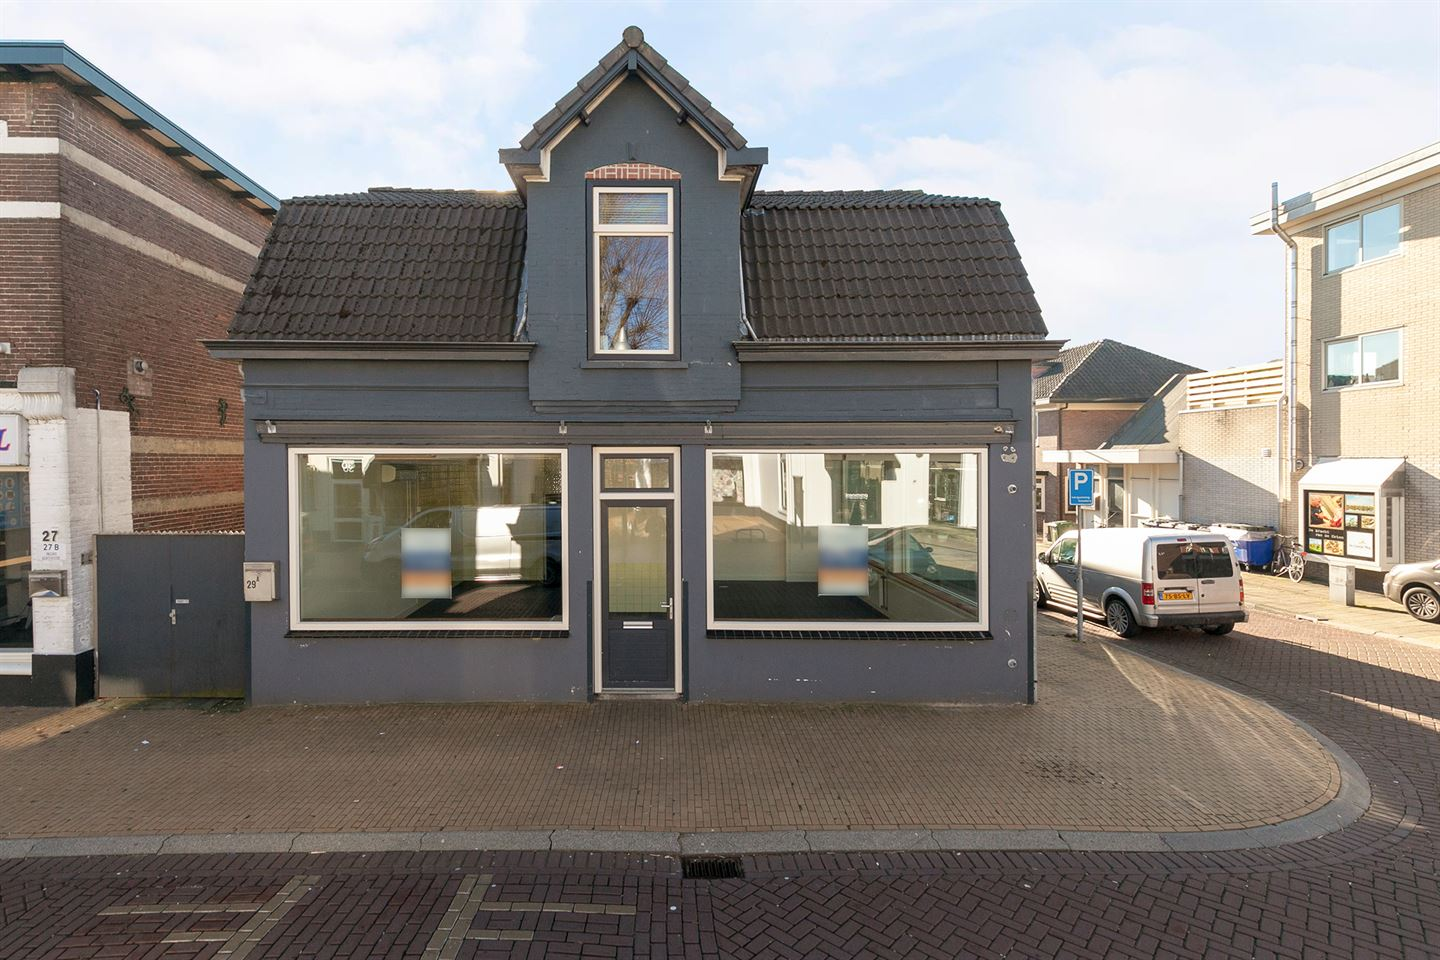 View photo 1 of Asselsestraat 29 B